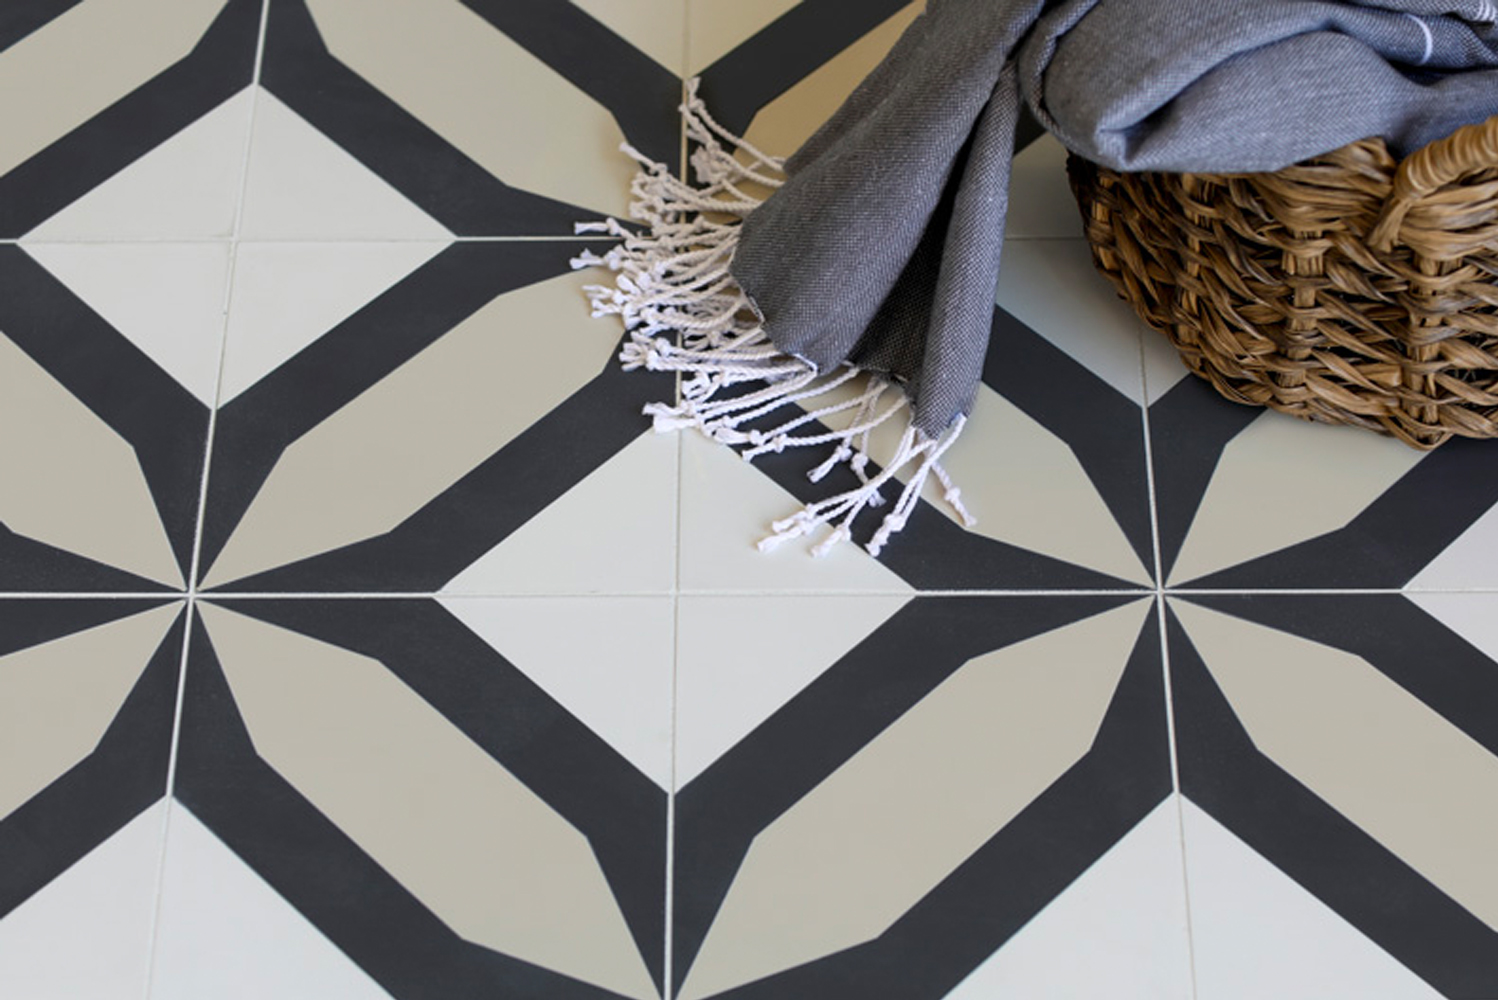 Inspired by the psychedelic wallpaper that bedecked her childhood home in Australia, tessellations as well as by neenish tarts, each handmade cement tile was designed with purpose.